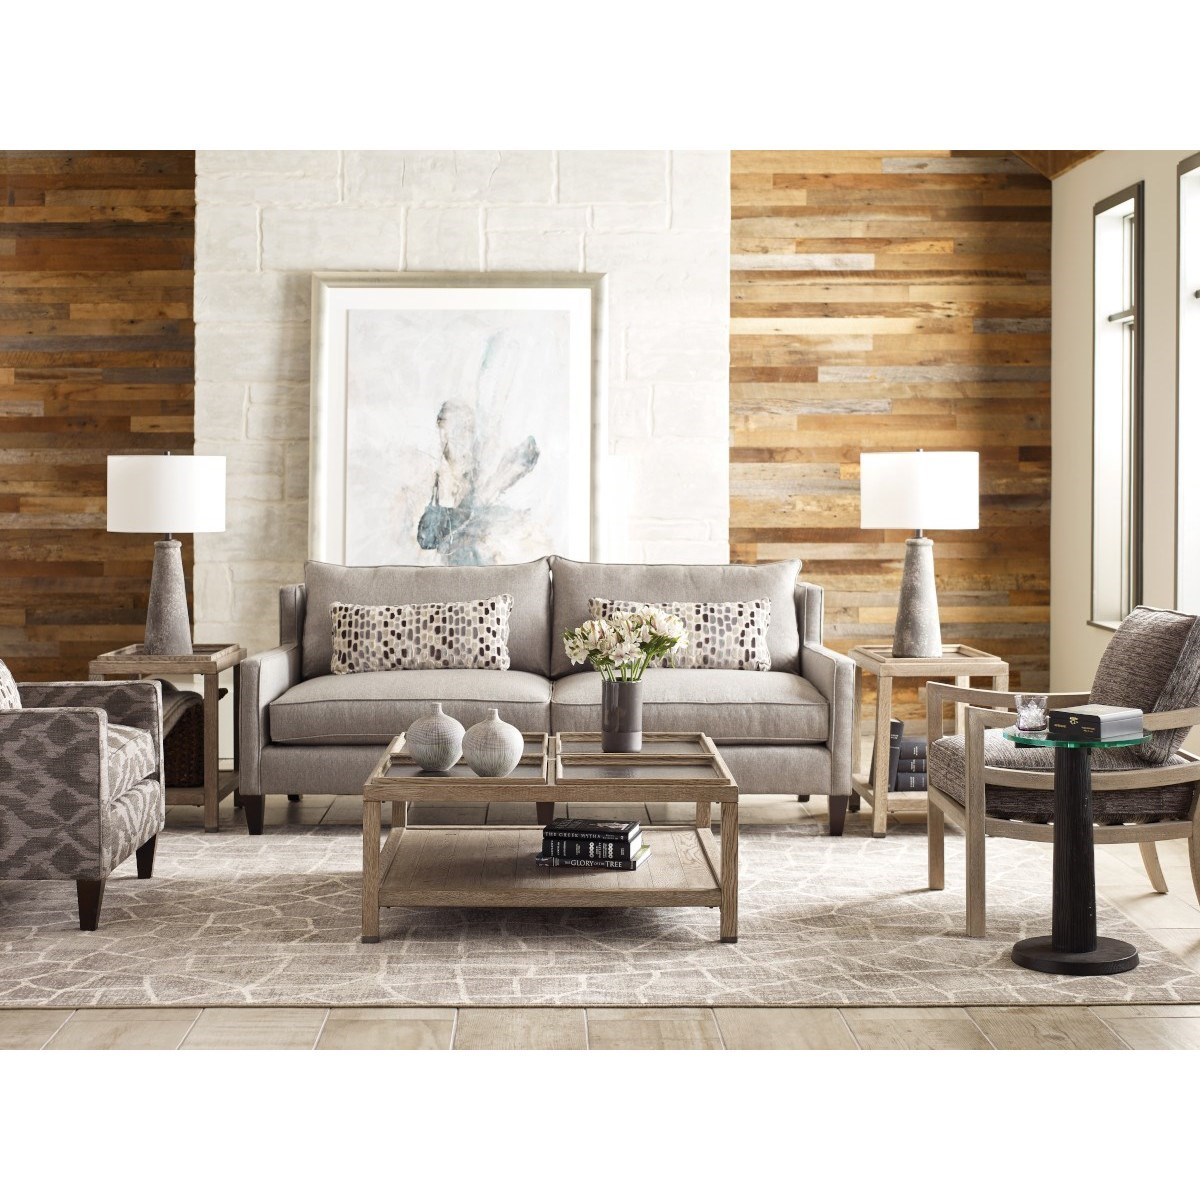 Alta Living Room Group 1 by Kincaid Furniture at Powell's Furniture and Mattress